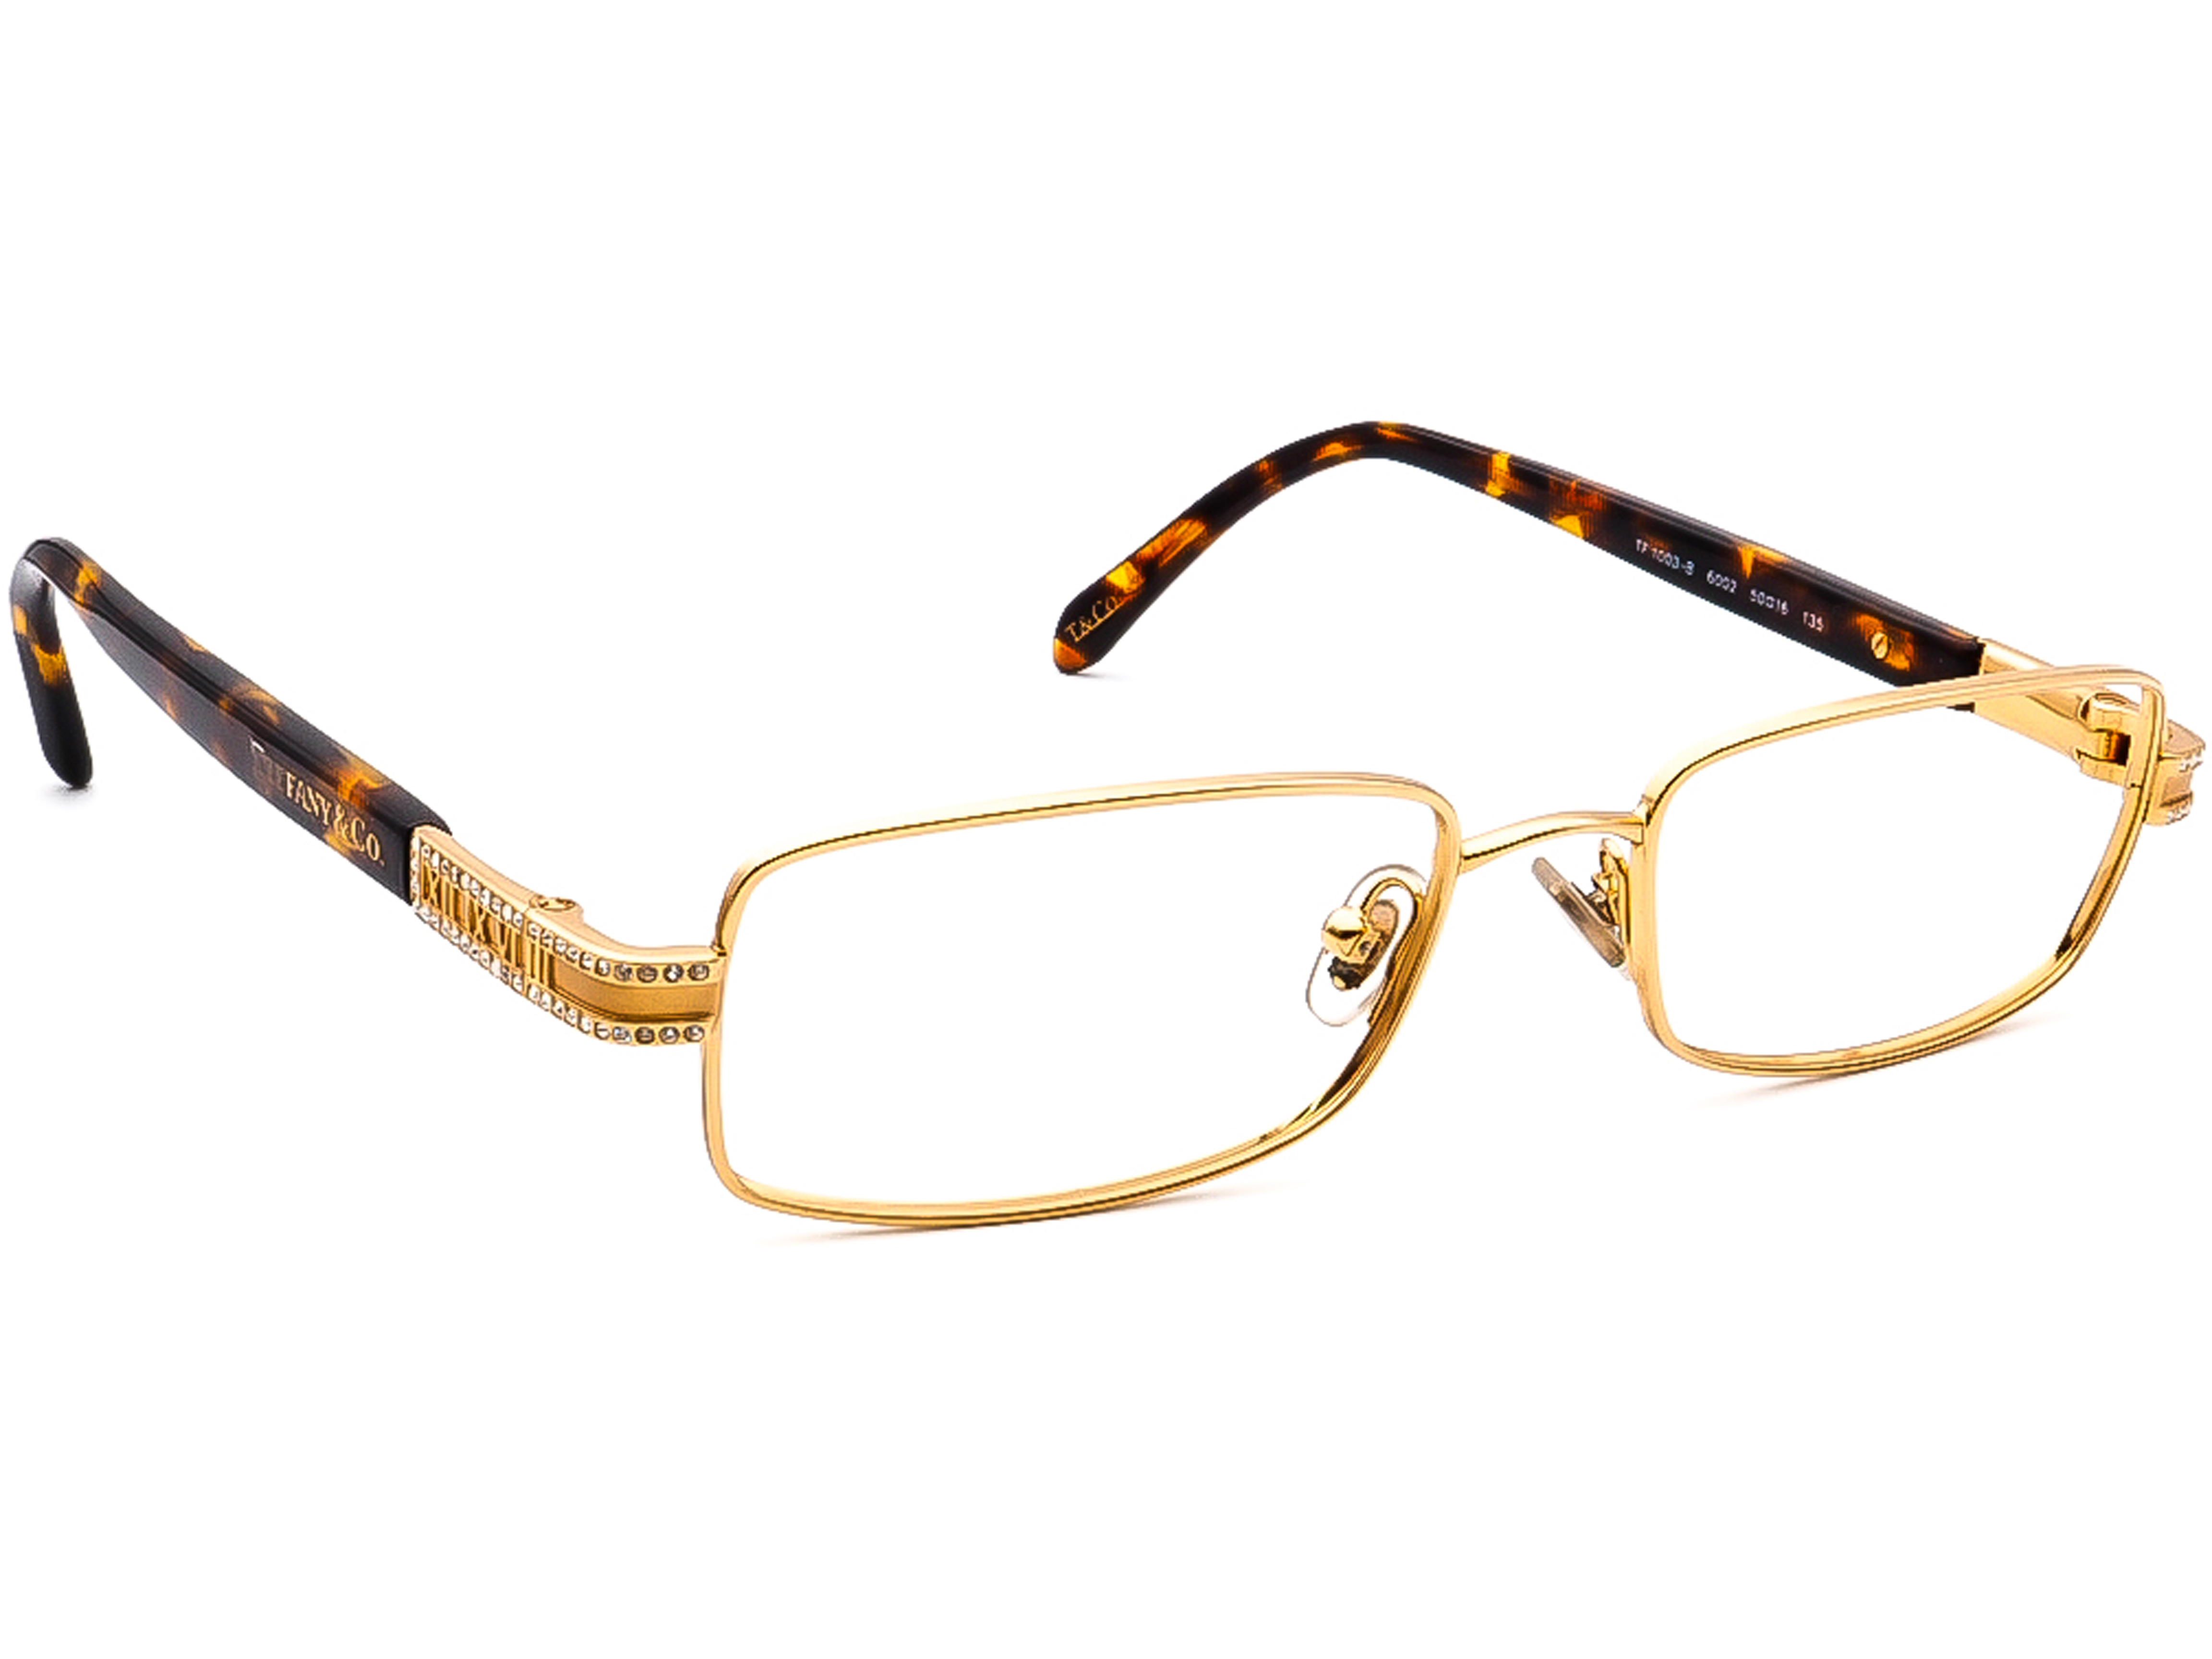 Tiffany & Co. TF 1003-B 6002 Eyeglasses